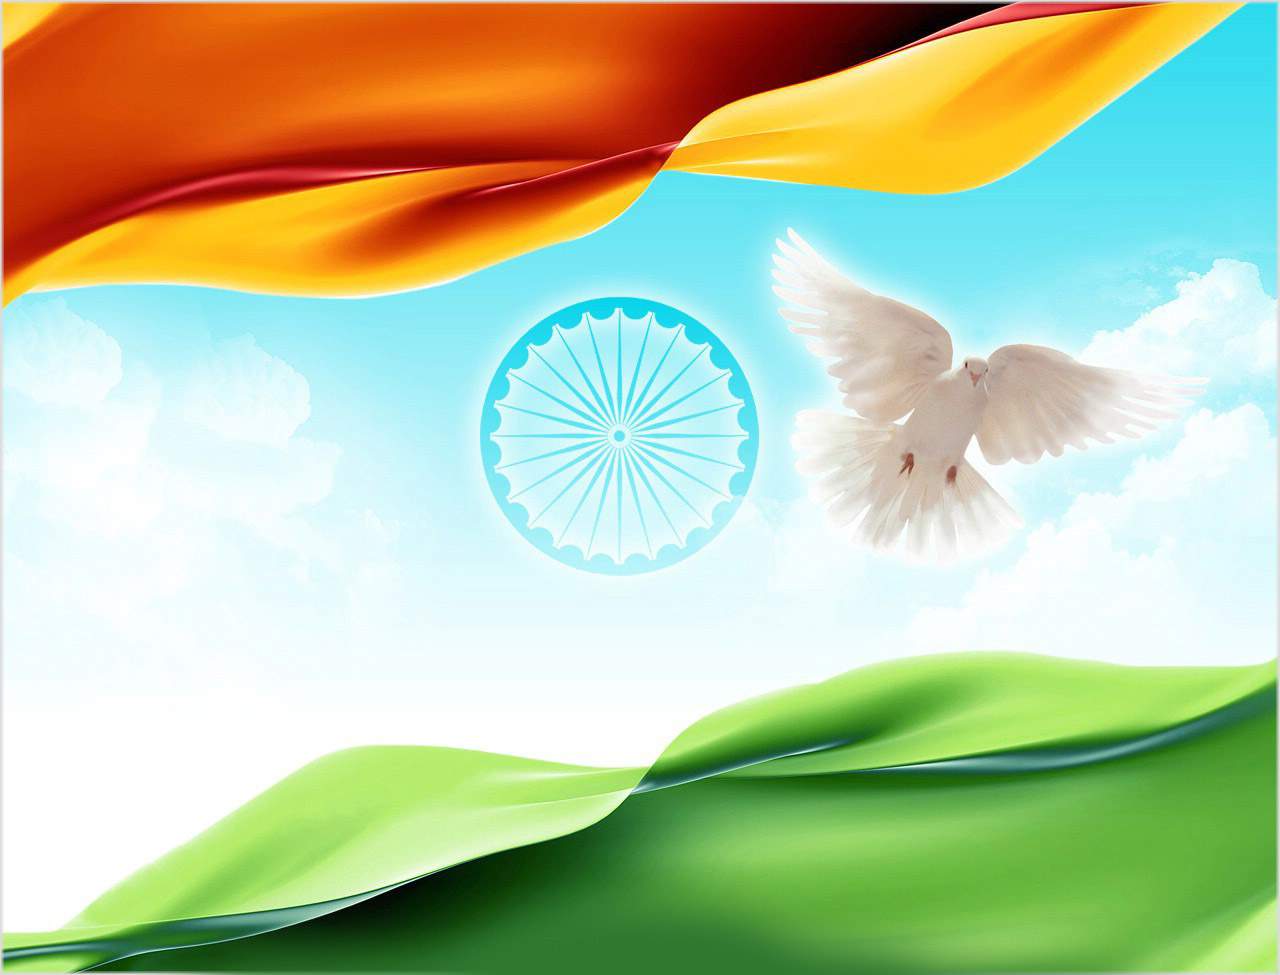 24 india independence day wallpaperjpg 1280x975